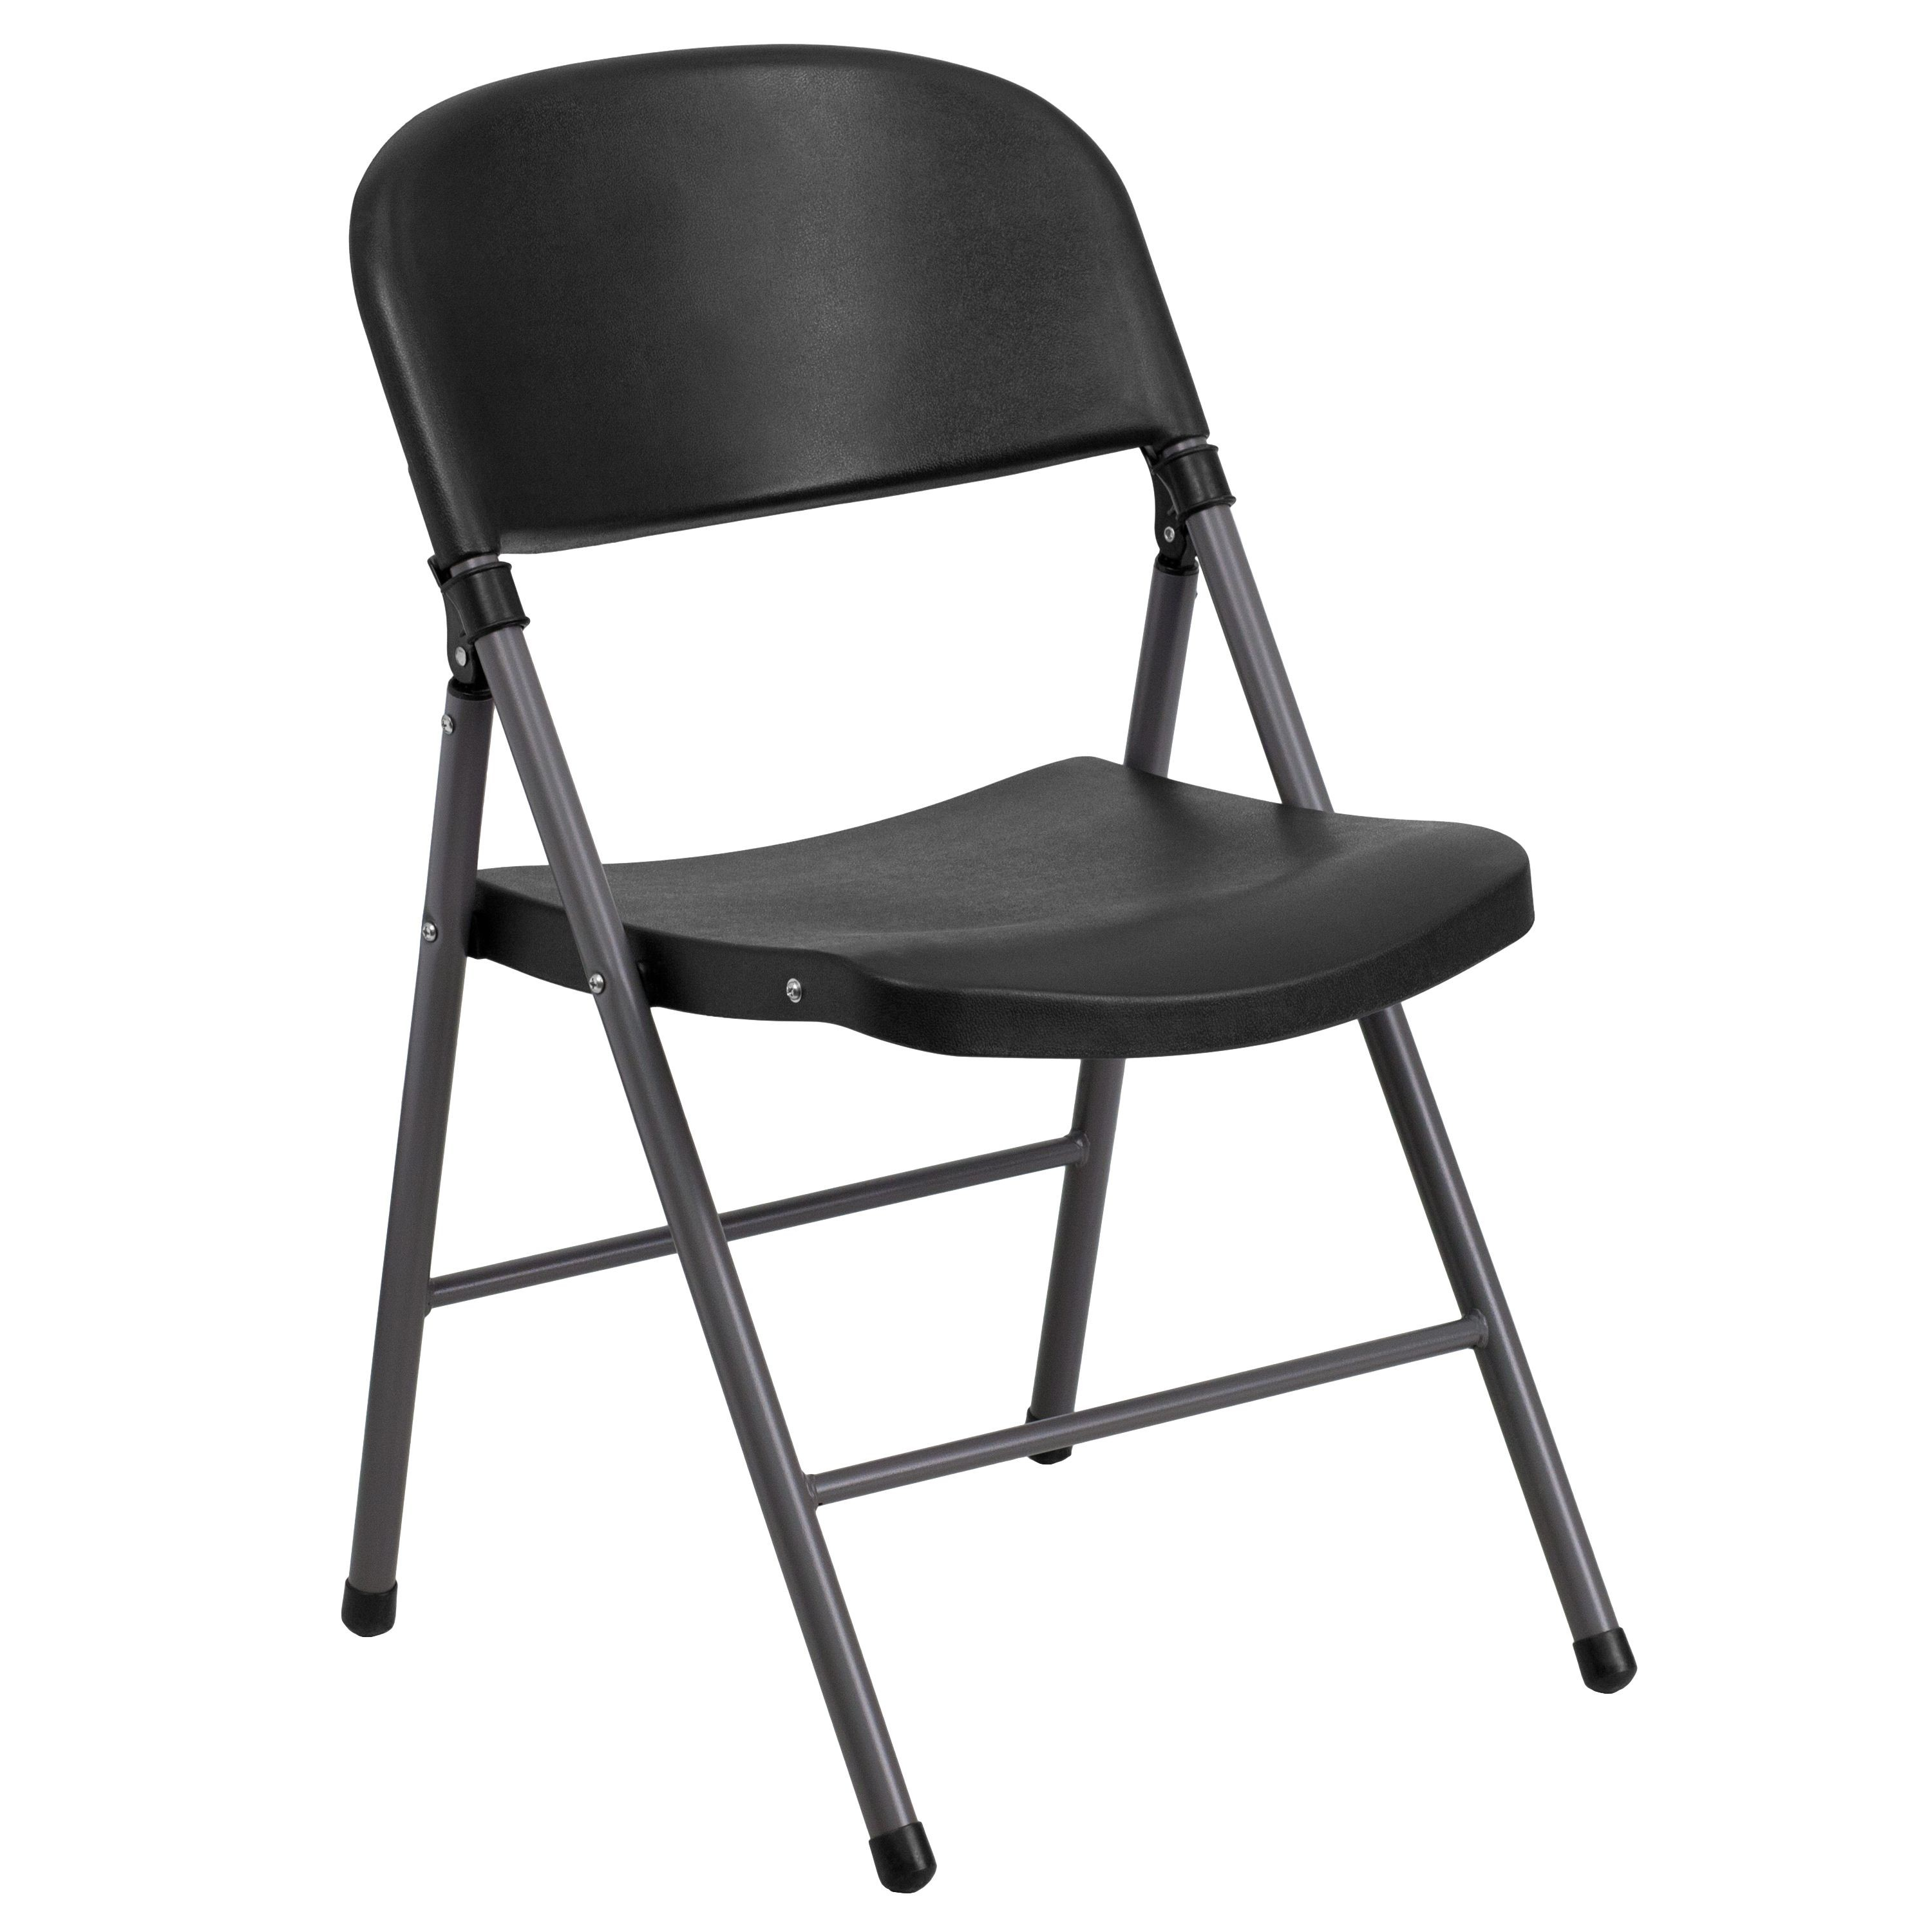 Flash Furniture DAD-YCD-50-GG Injection Molded Black Plastic Folding Chair